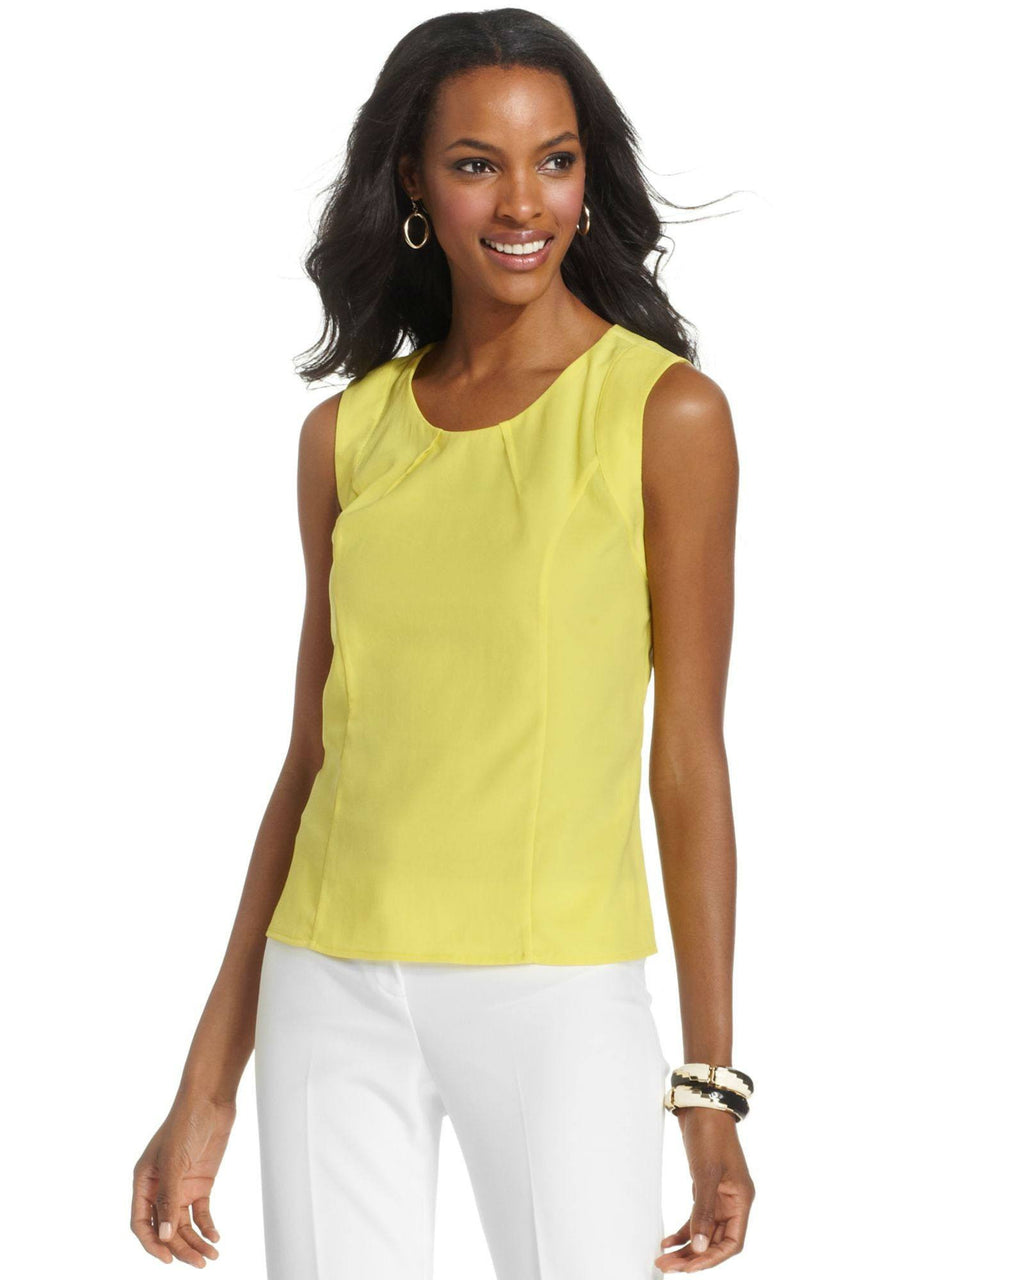 Anne Klein Yellow Sleeveless Pleatedneck Shell-ANNE KLEIN-Fashionbarn shop